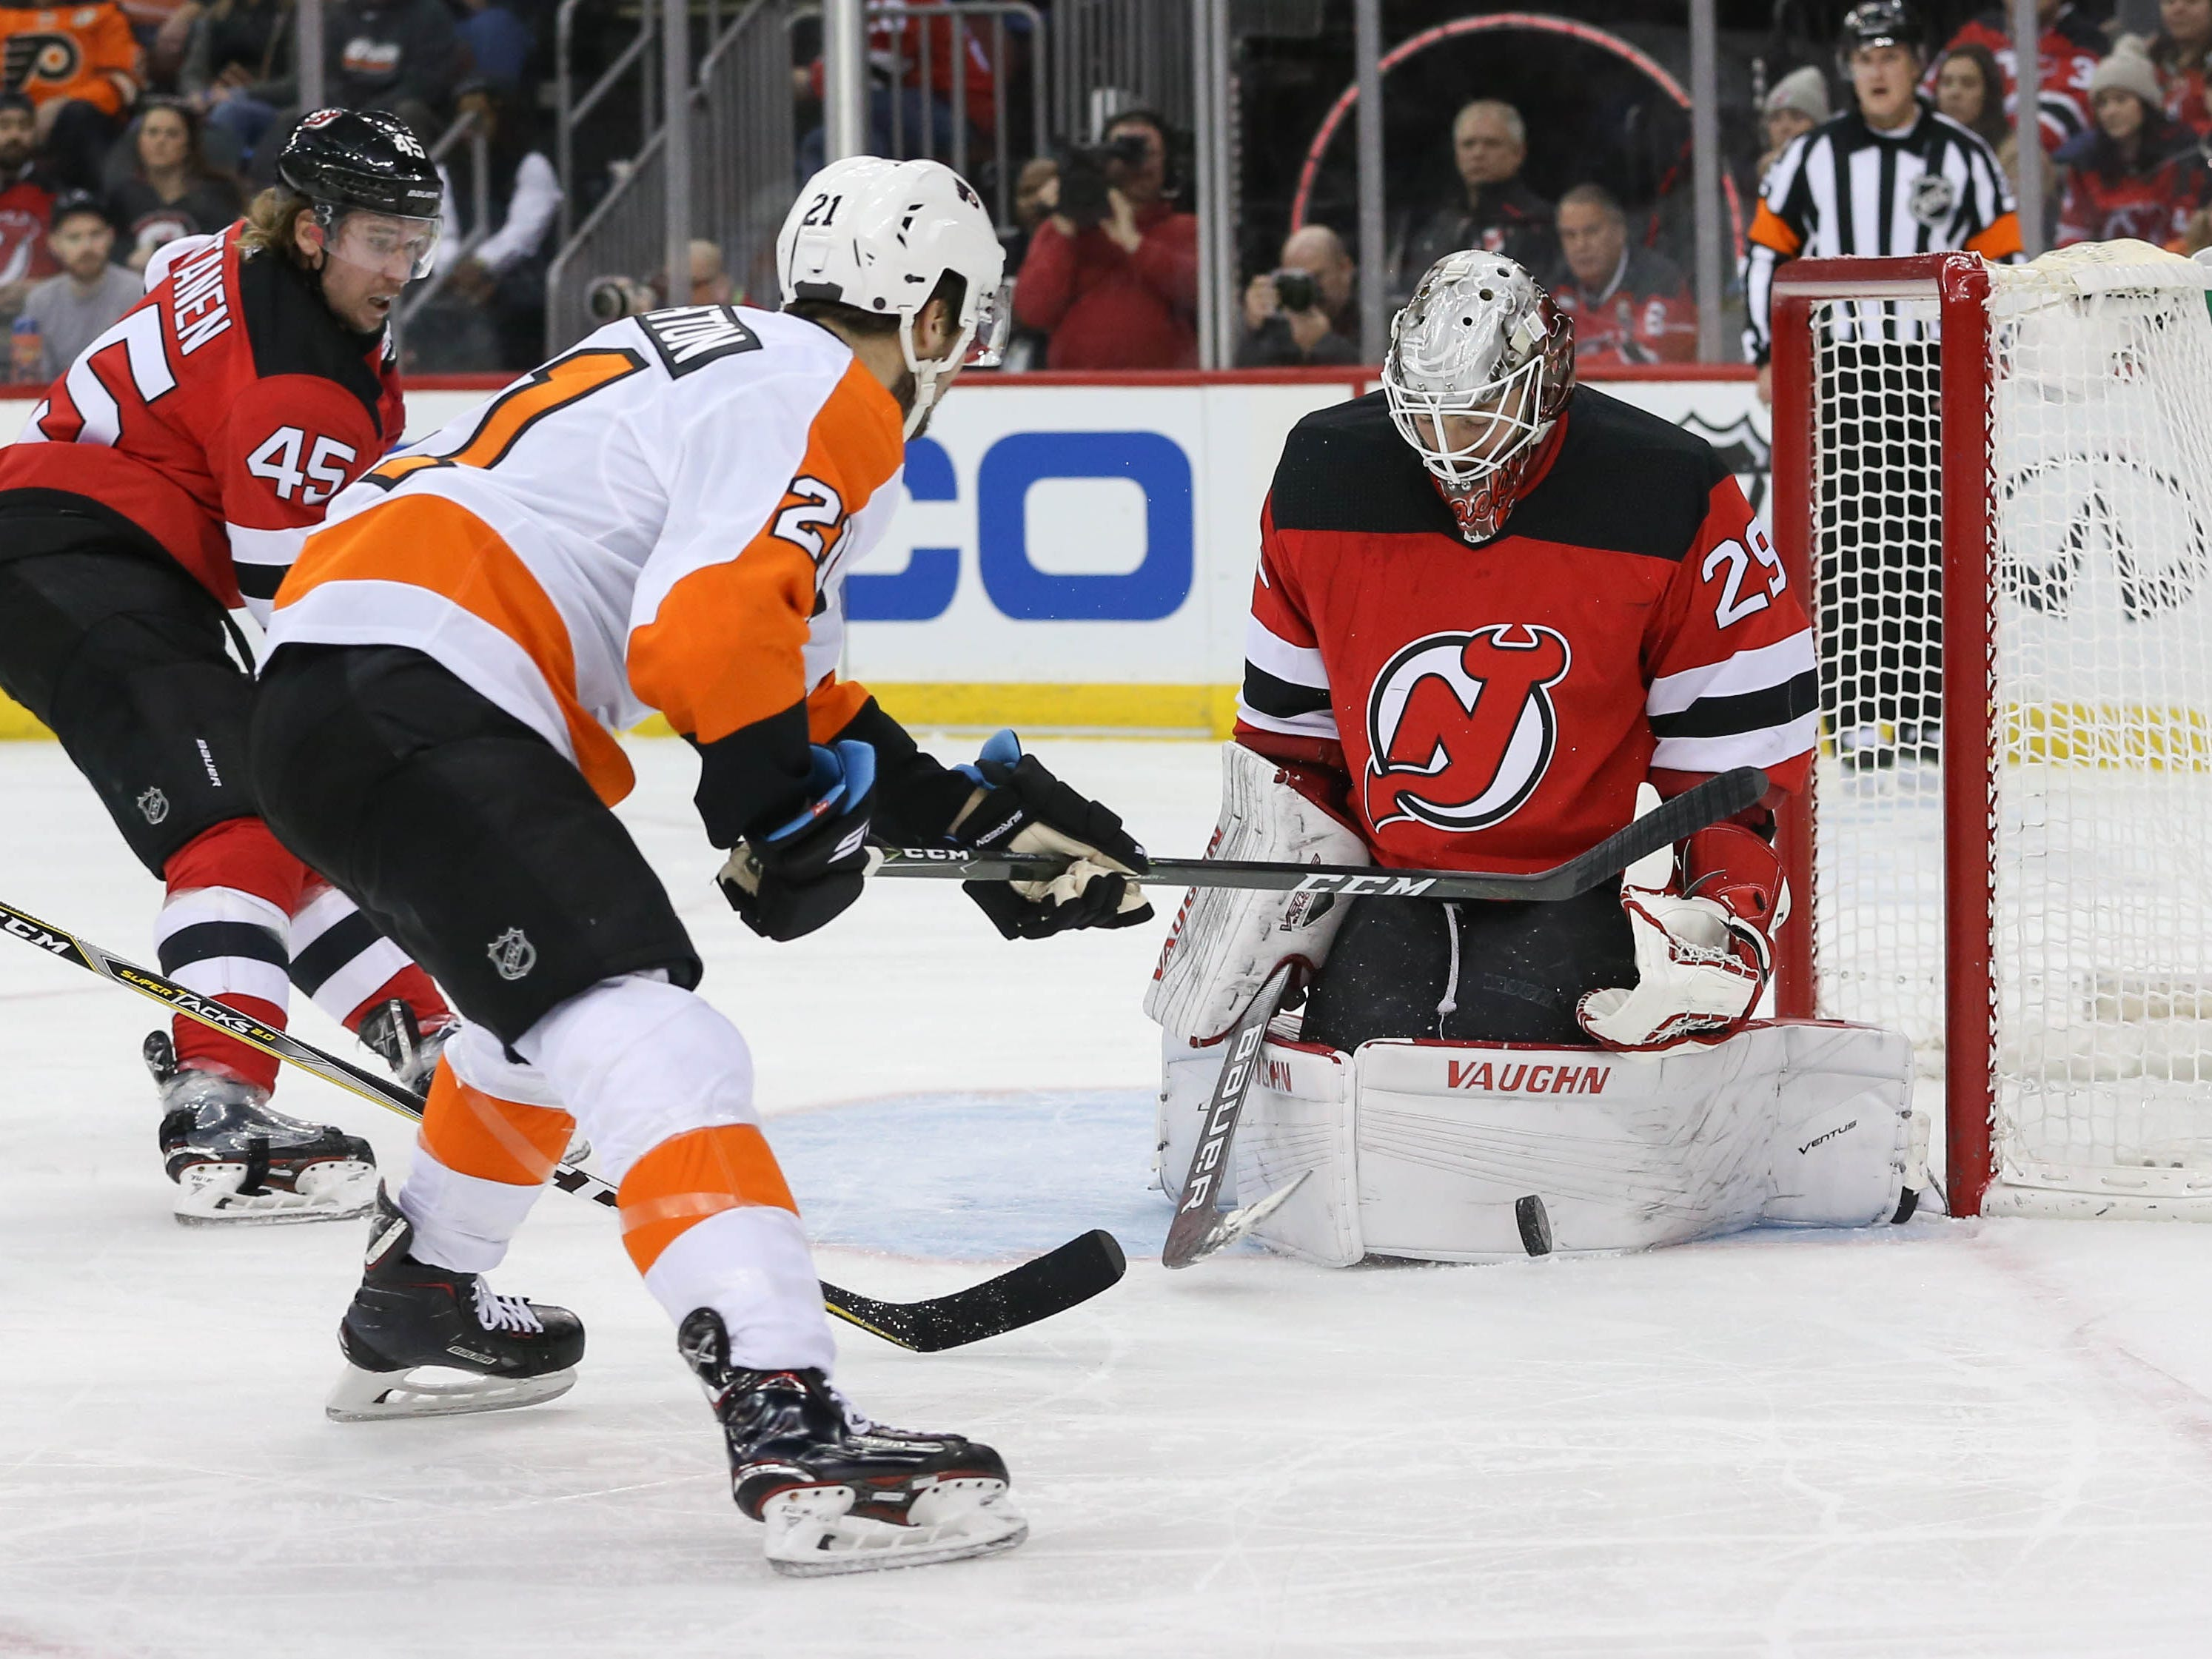 Jan 12, 2019; Newark, NJ, USA; New Jersey Devils goaltender Mackenzie Blackwood (29) makes a save on Philadelphia Flyers center Scott Laughton (21) during the first period at Prudential Center.